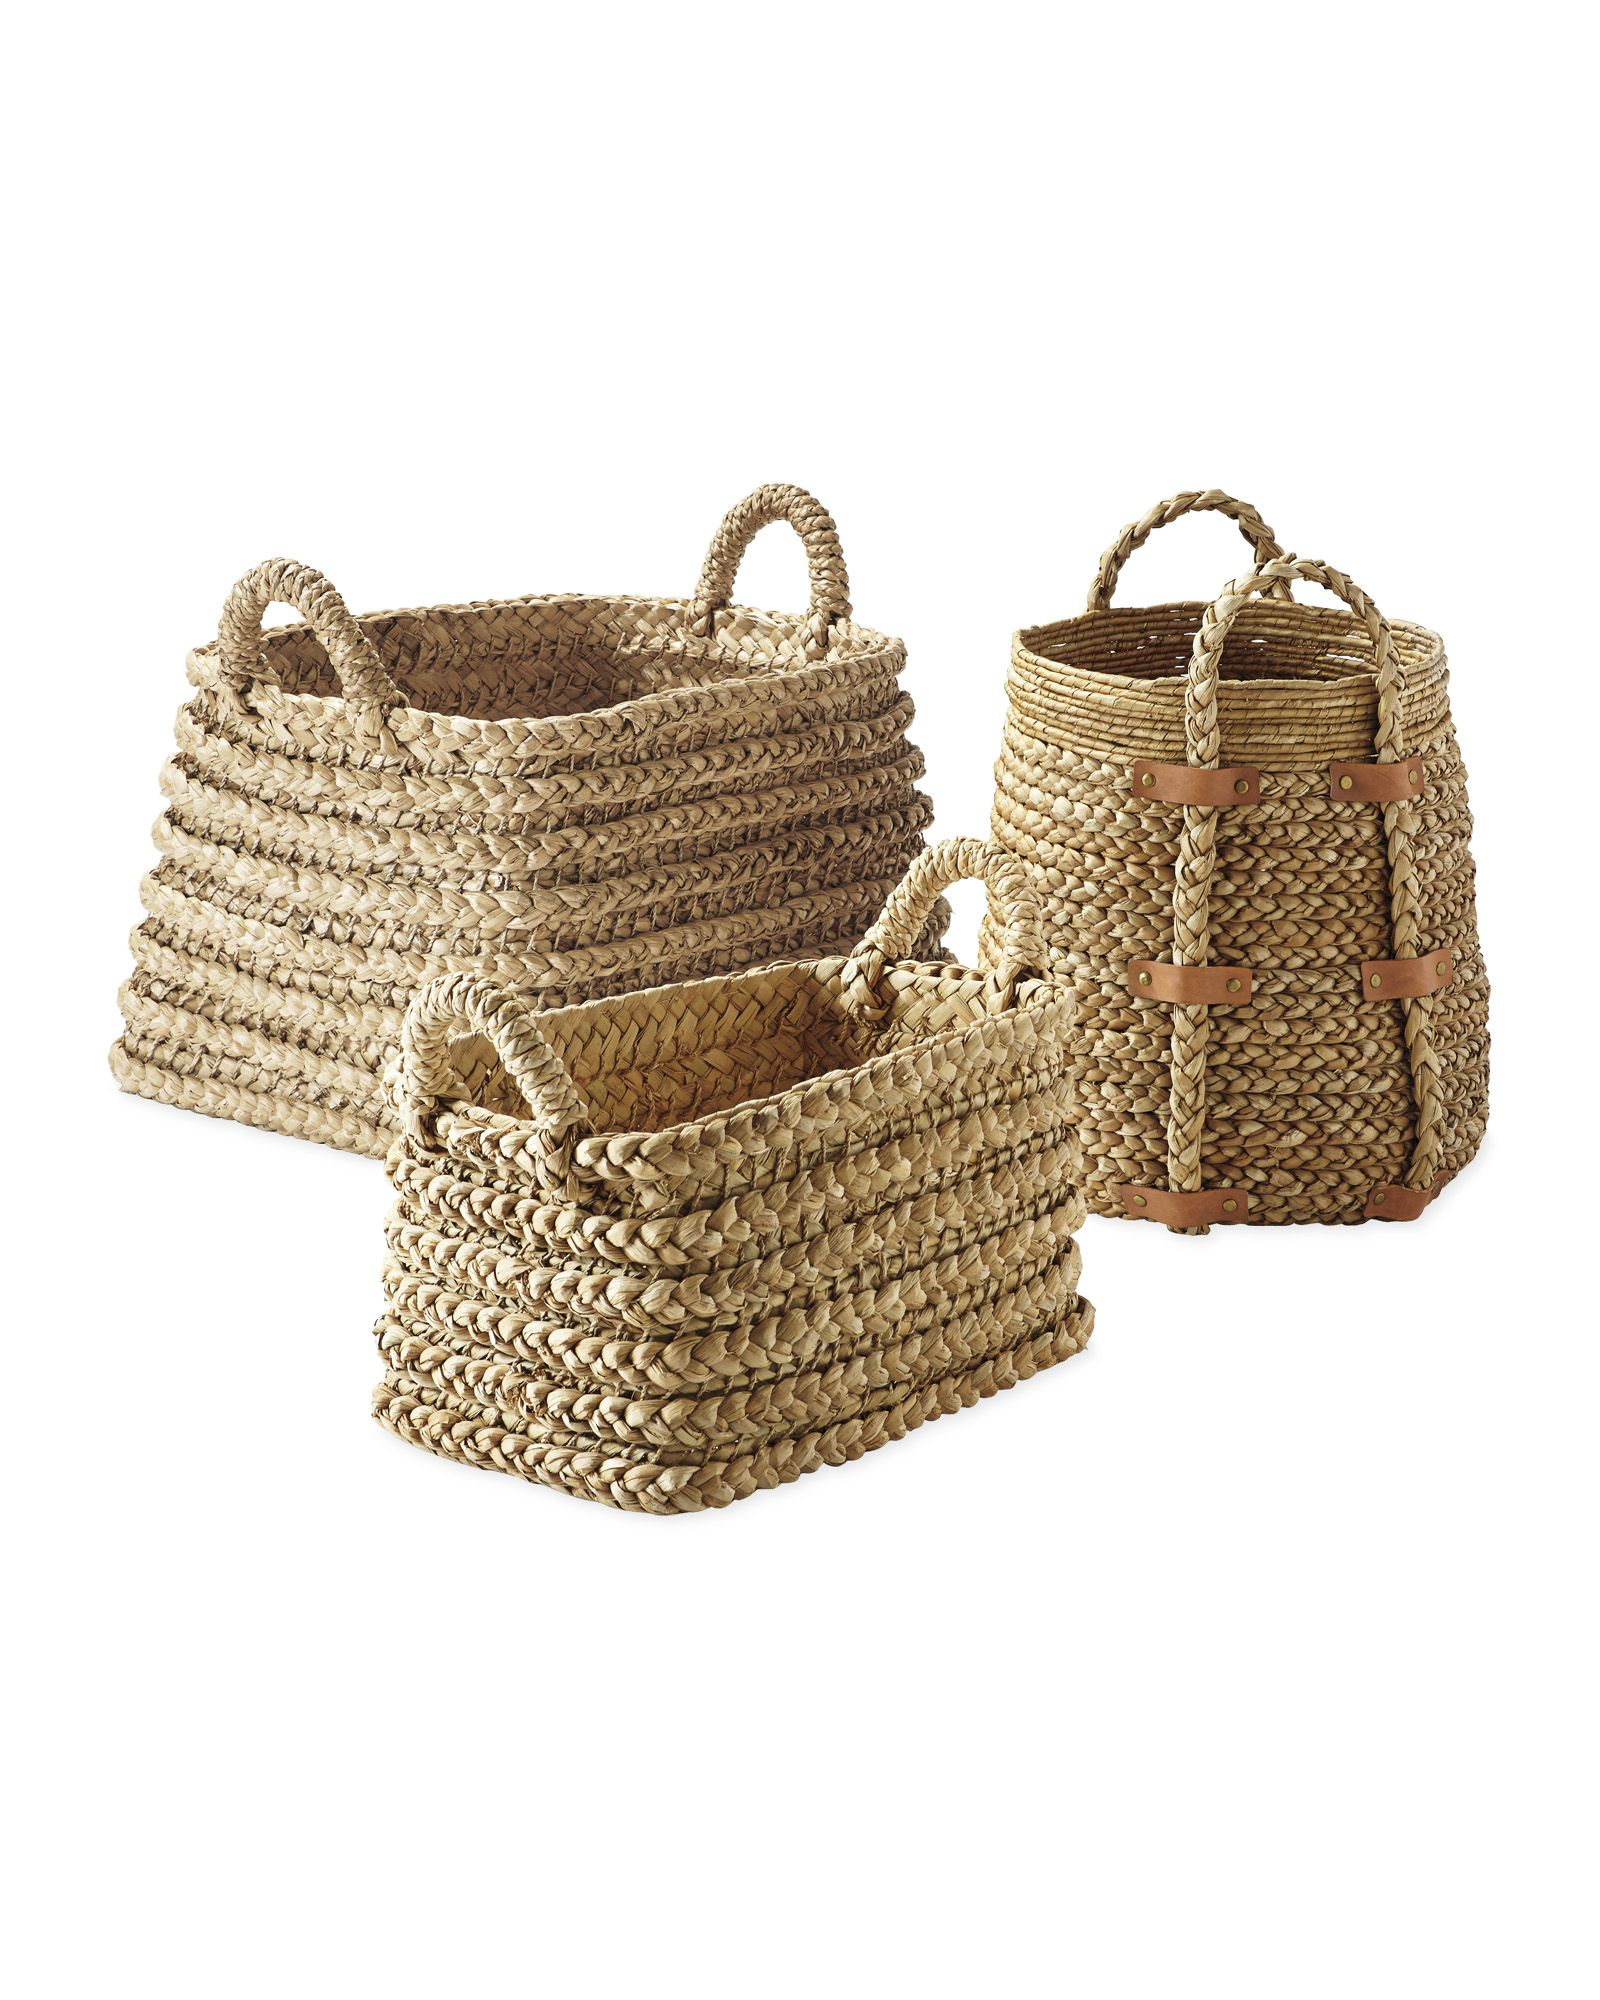 Seagrass Baskets In 2019 Basket Living Room Decor Tips